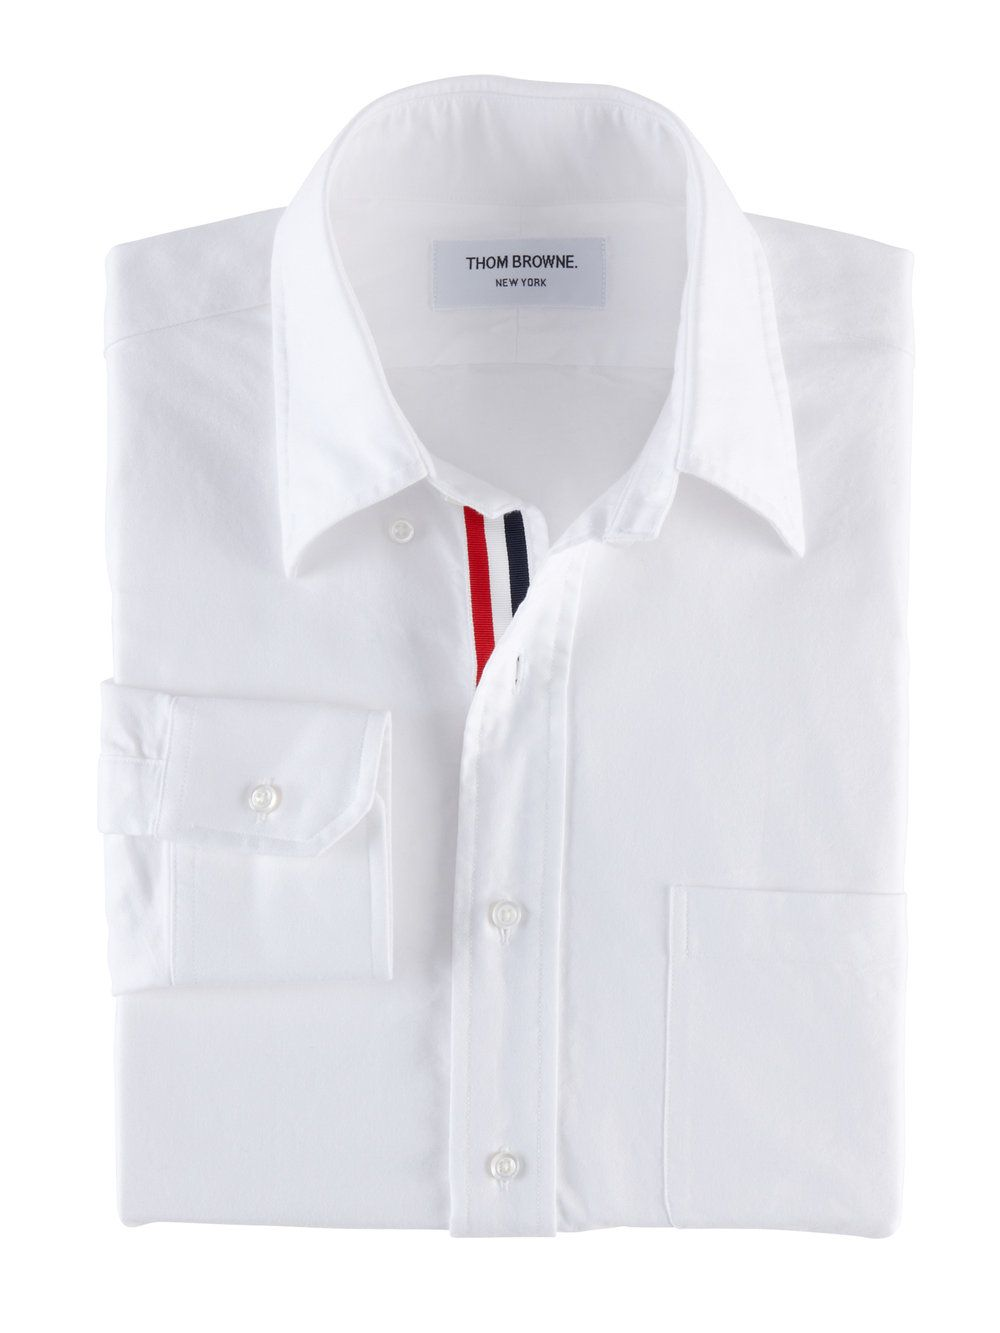 Buy Cheap Classic grosgrain placket shirt dress - White Thom Browne Super Specials Great Deals Cheap Price Cheap Price Free Shipping Buy Cheap Genuine Lne06eQra0